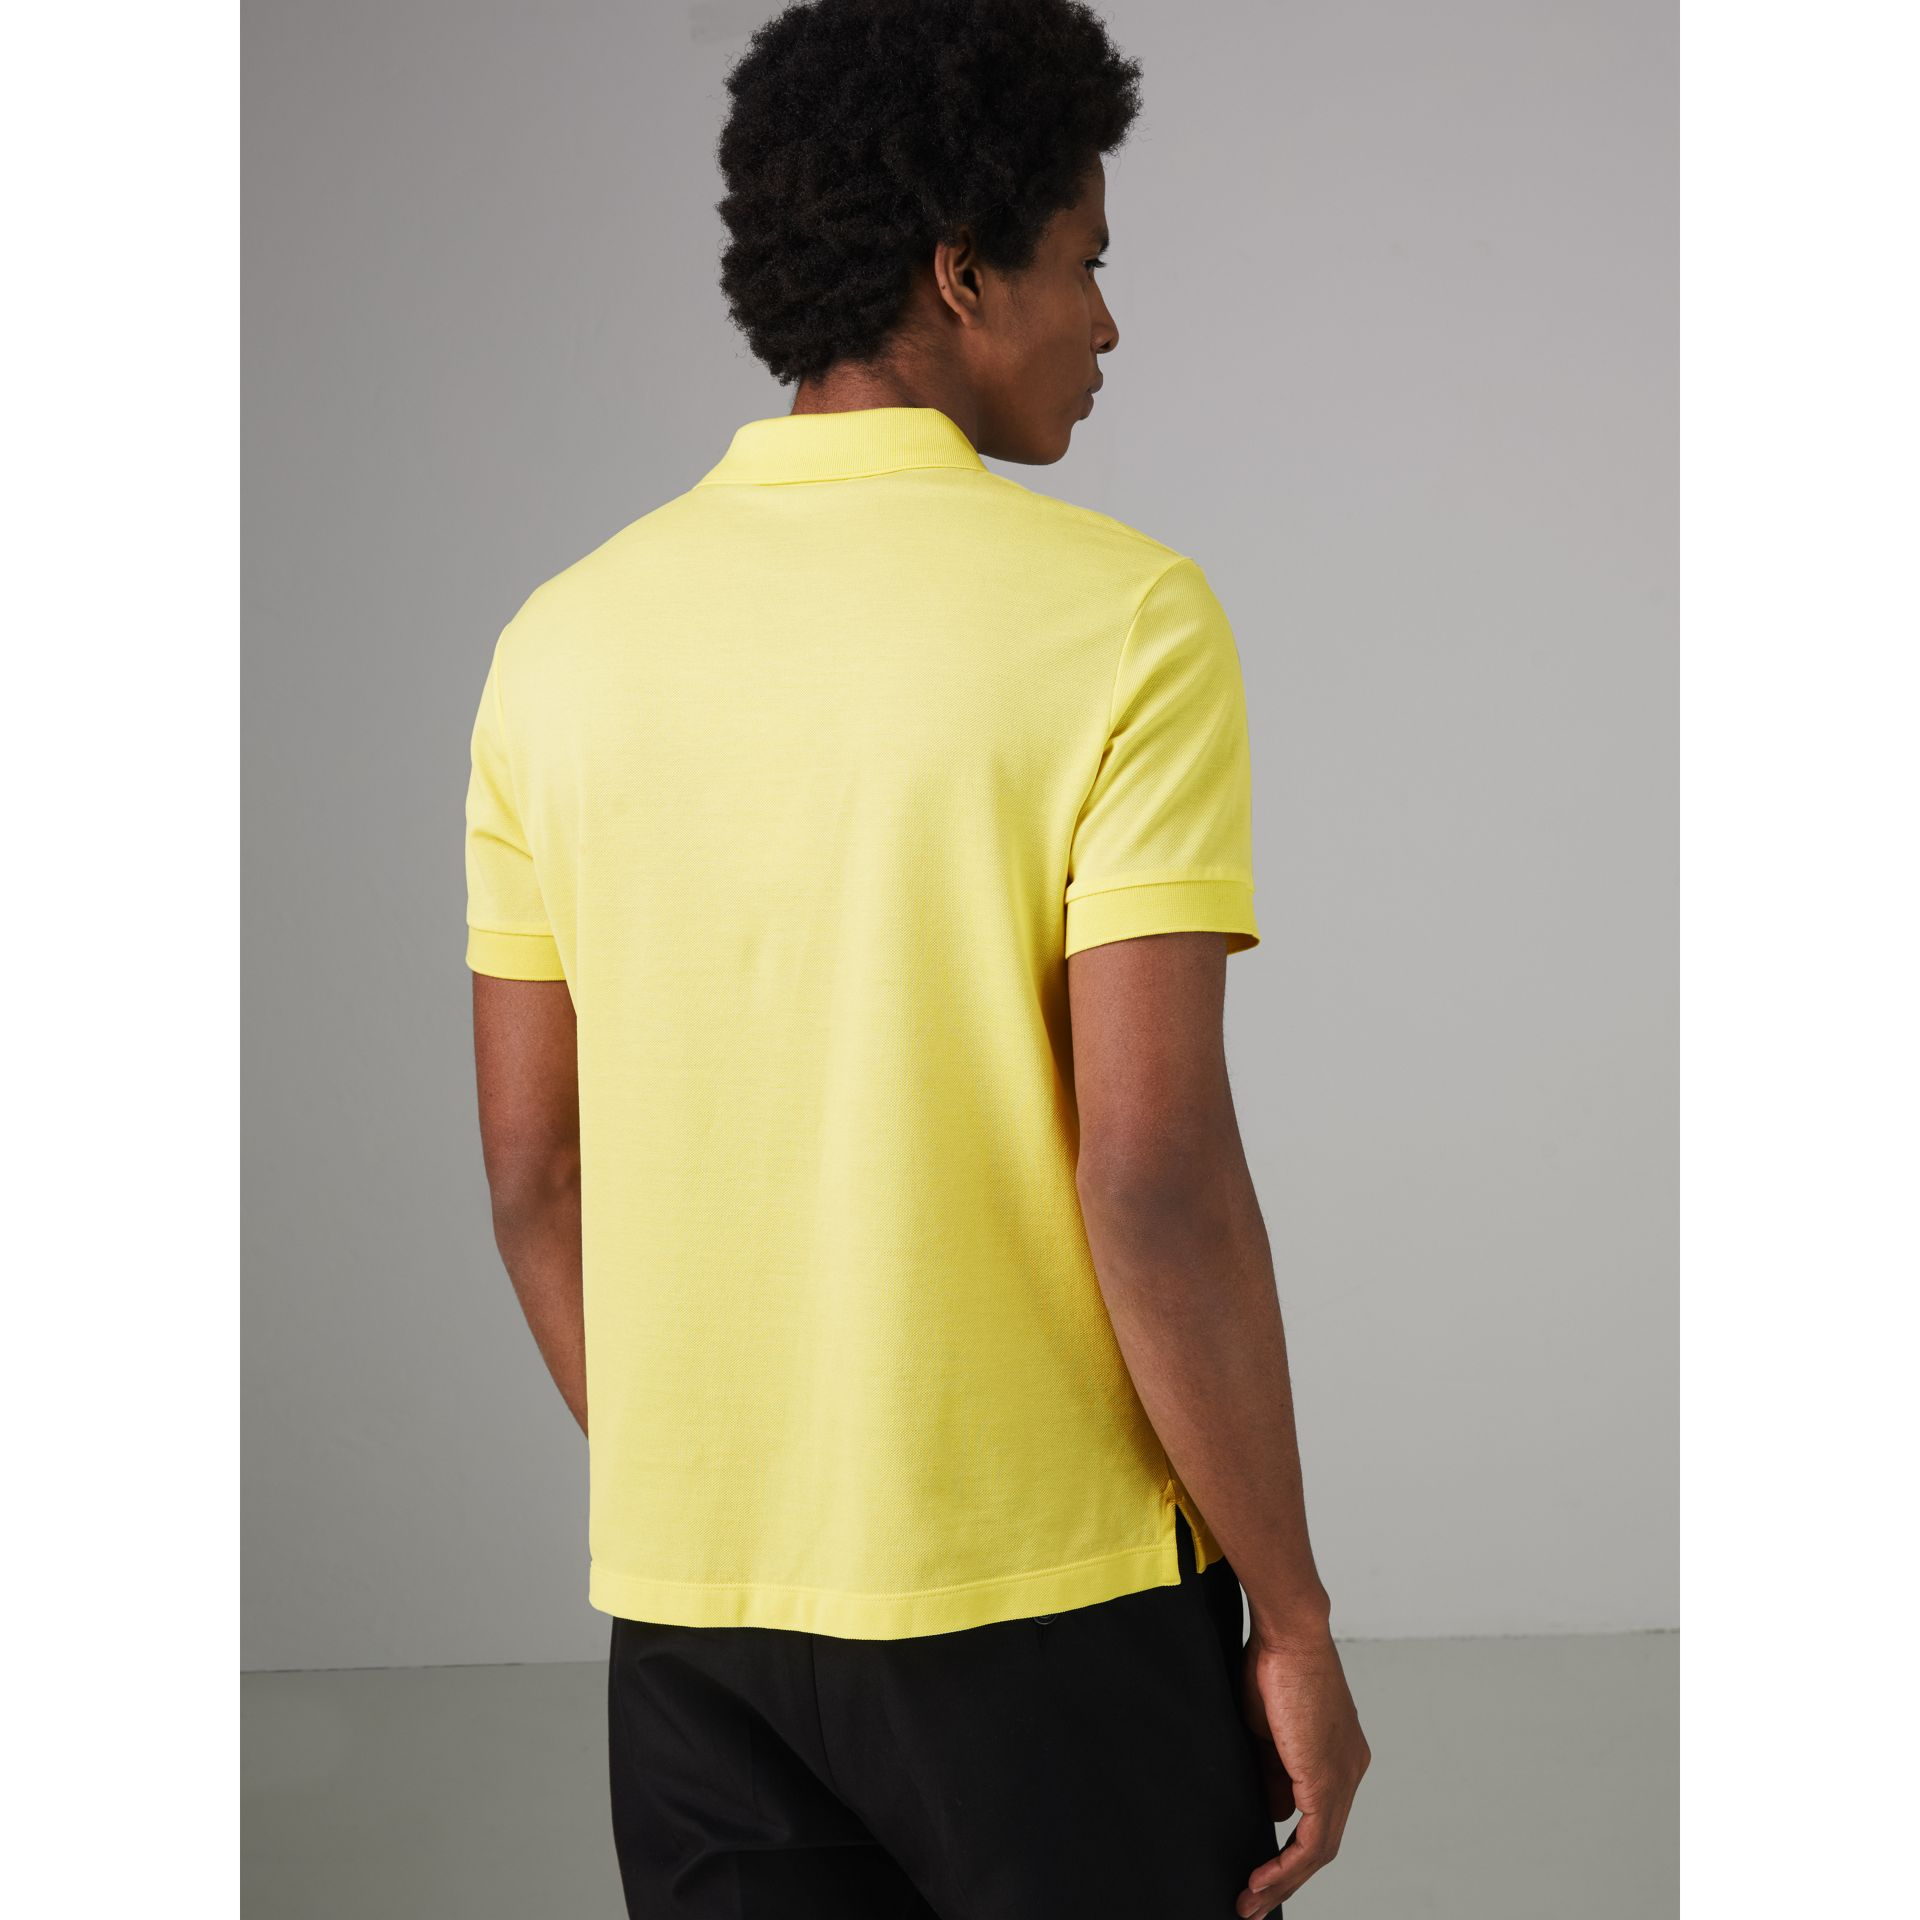 Painted Button Cotton Piqué Polo Shirt in Vibrant Lemon - Men | Burberry - gallery image 2